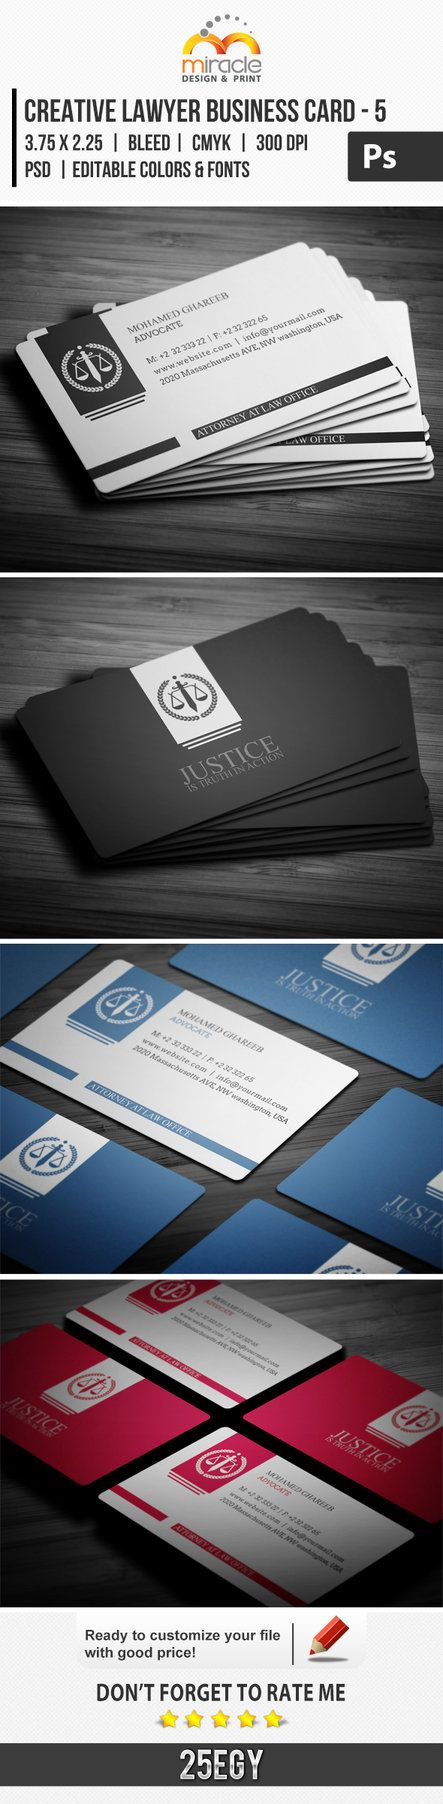 28 best Business cards lawyers images on Pinterest | Lipsense ...